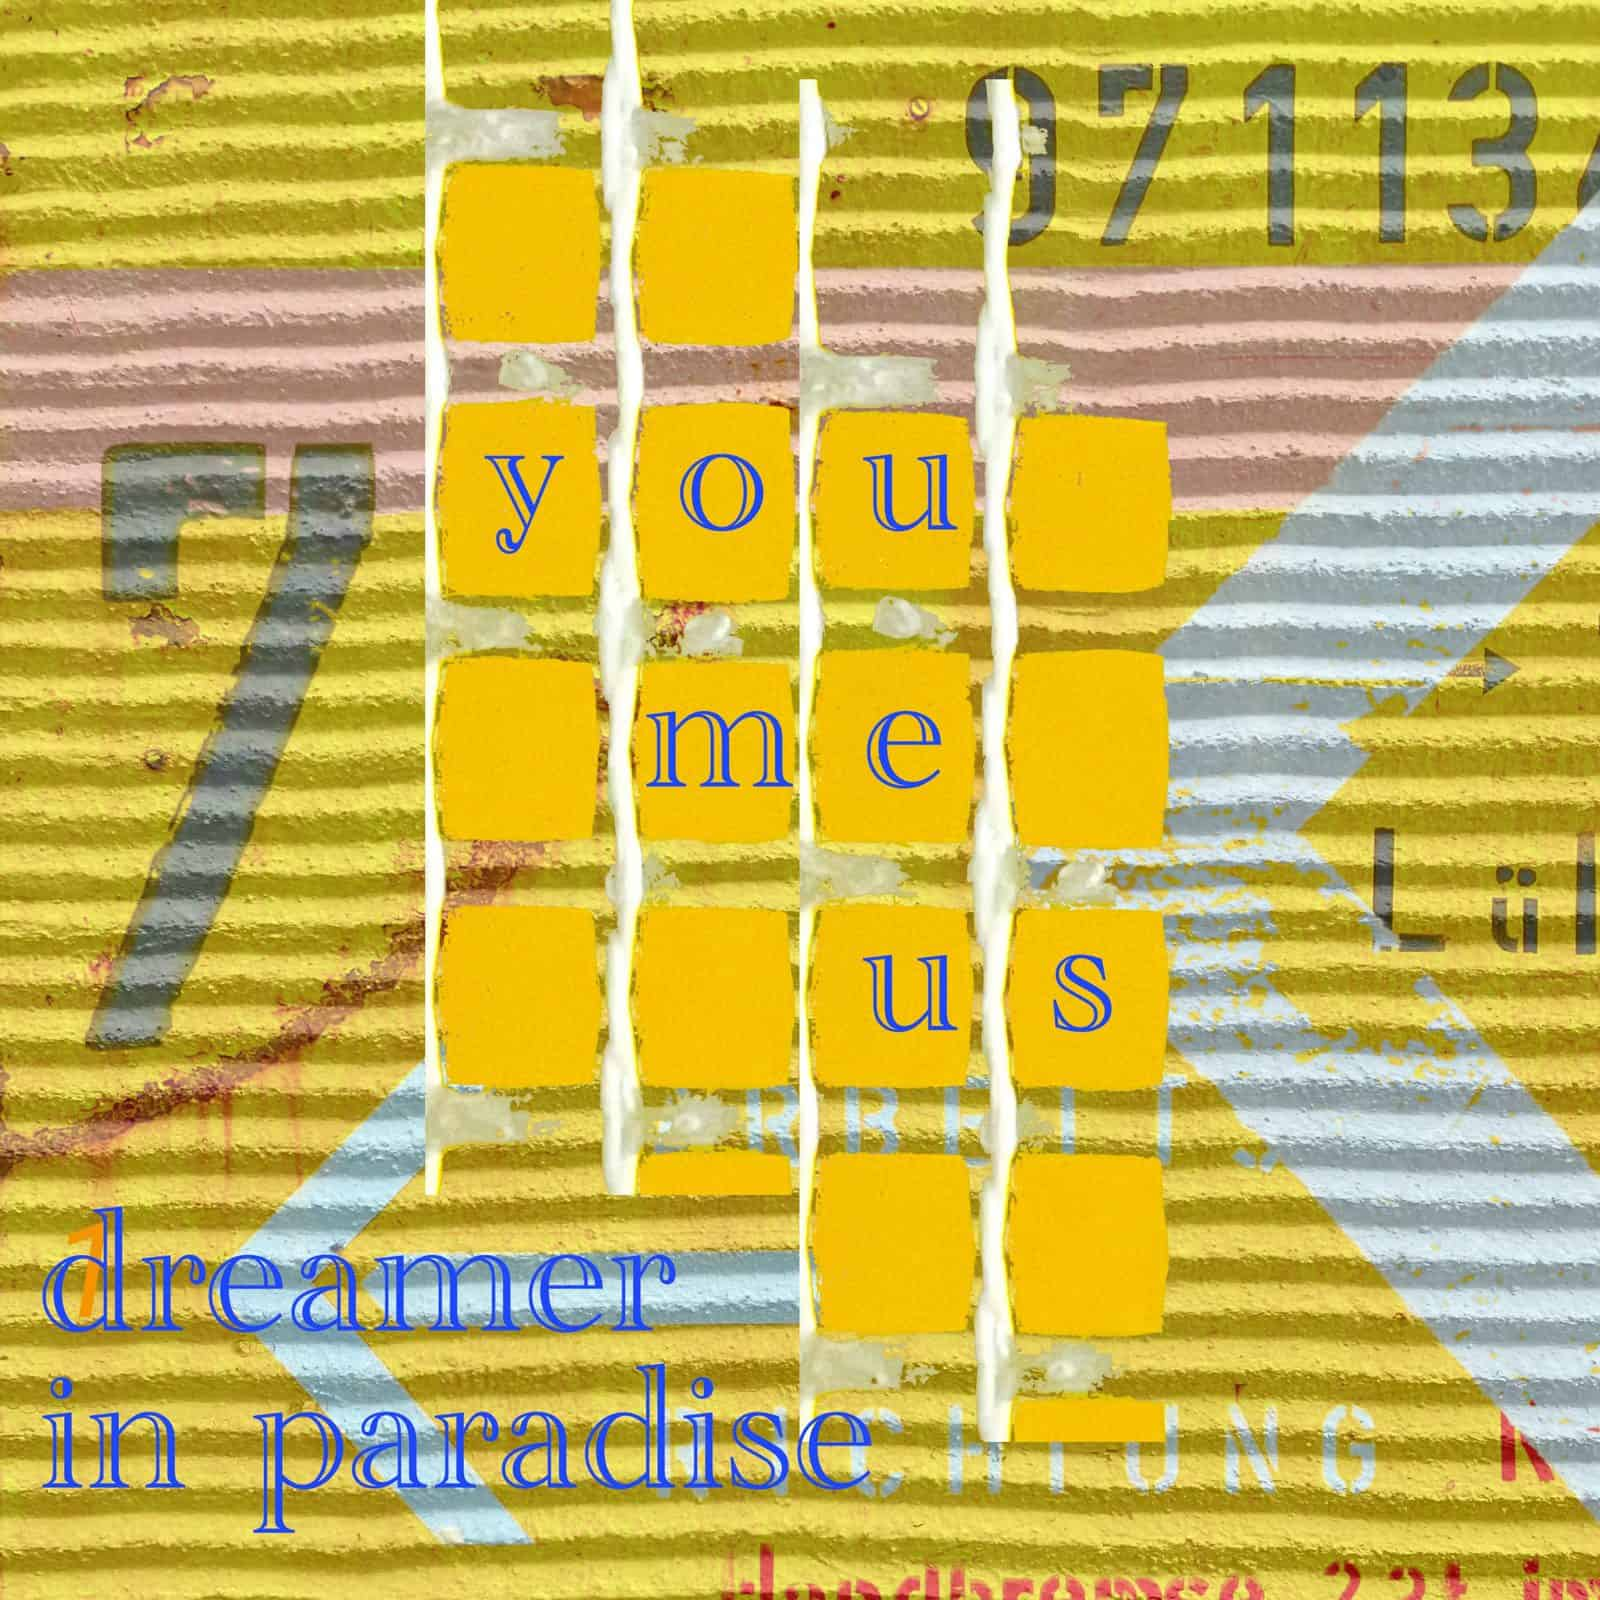 -08- (you, me, us) dreamer in paradise